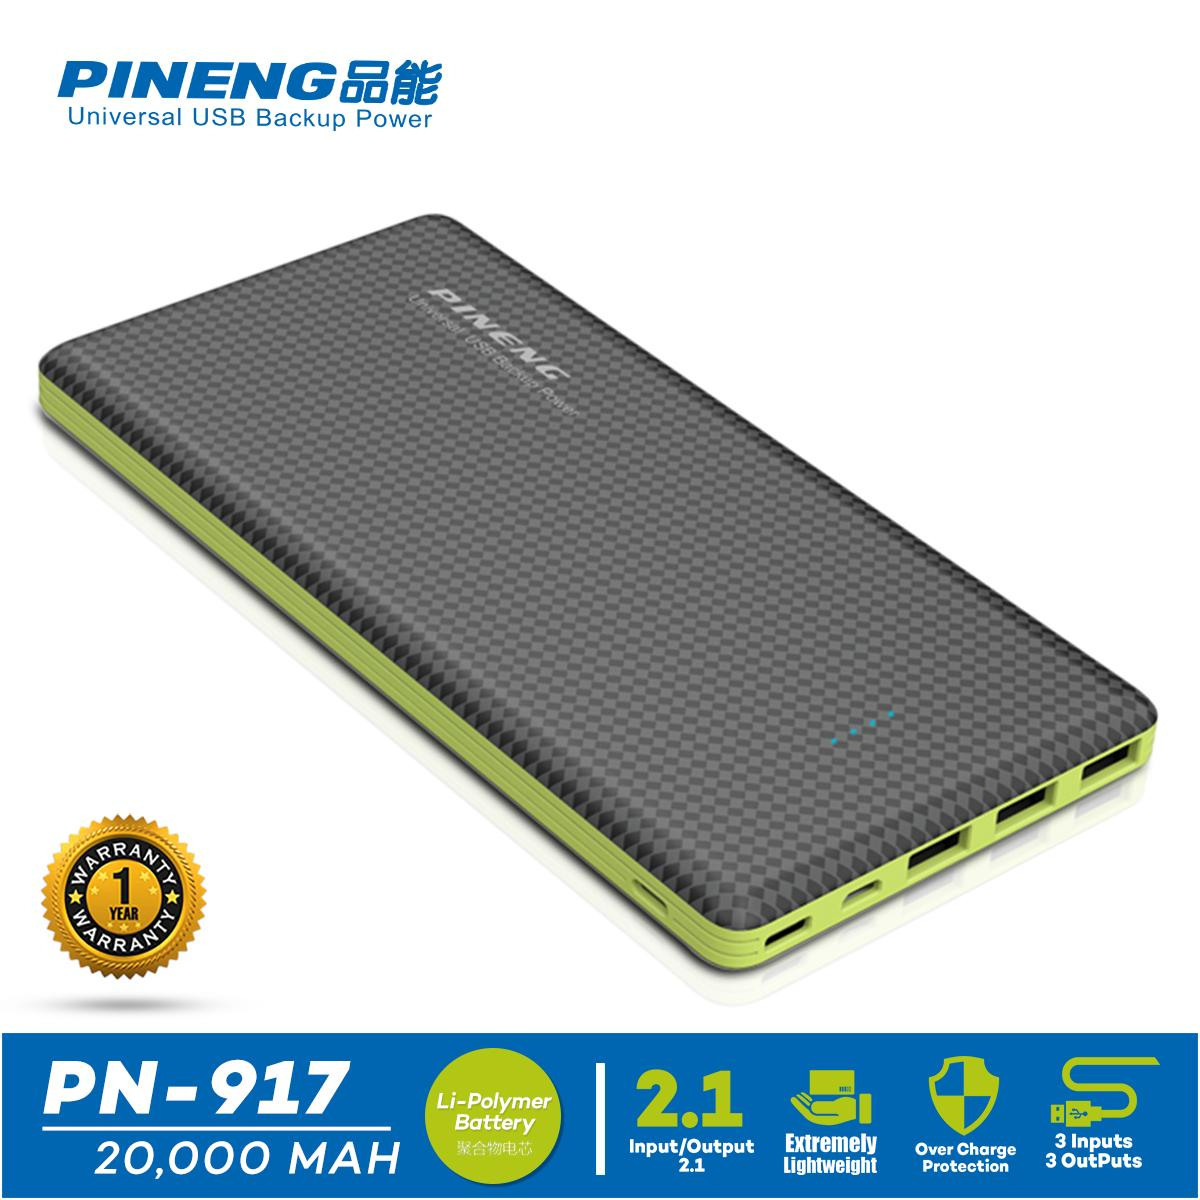 Buy Phone Tablet Batteries Chargers In Philippines Lazada Charger Mobil Car Saver Usb For Smartphone Pineng Pn 917 20000mah With Over Charge Protection Circuit 3 Outputs Powerbank